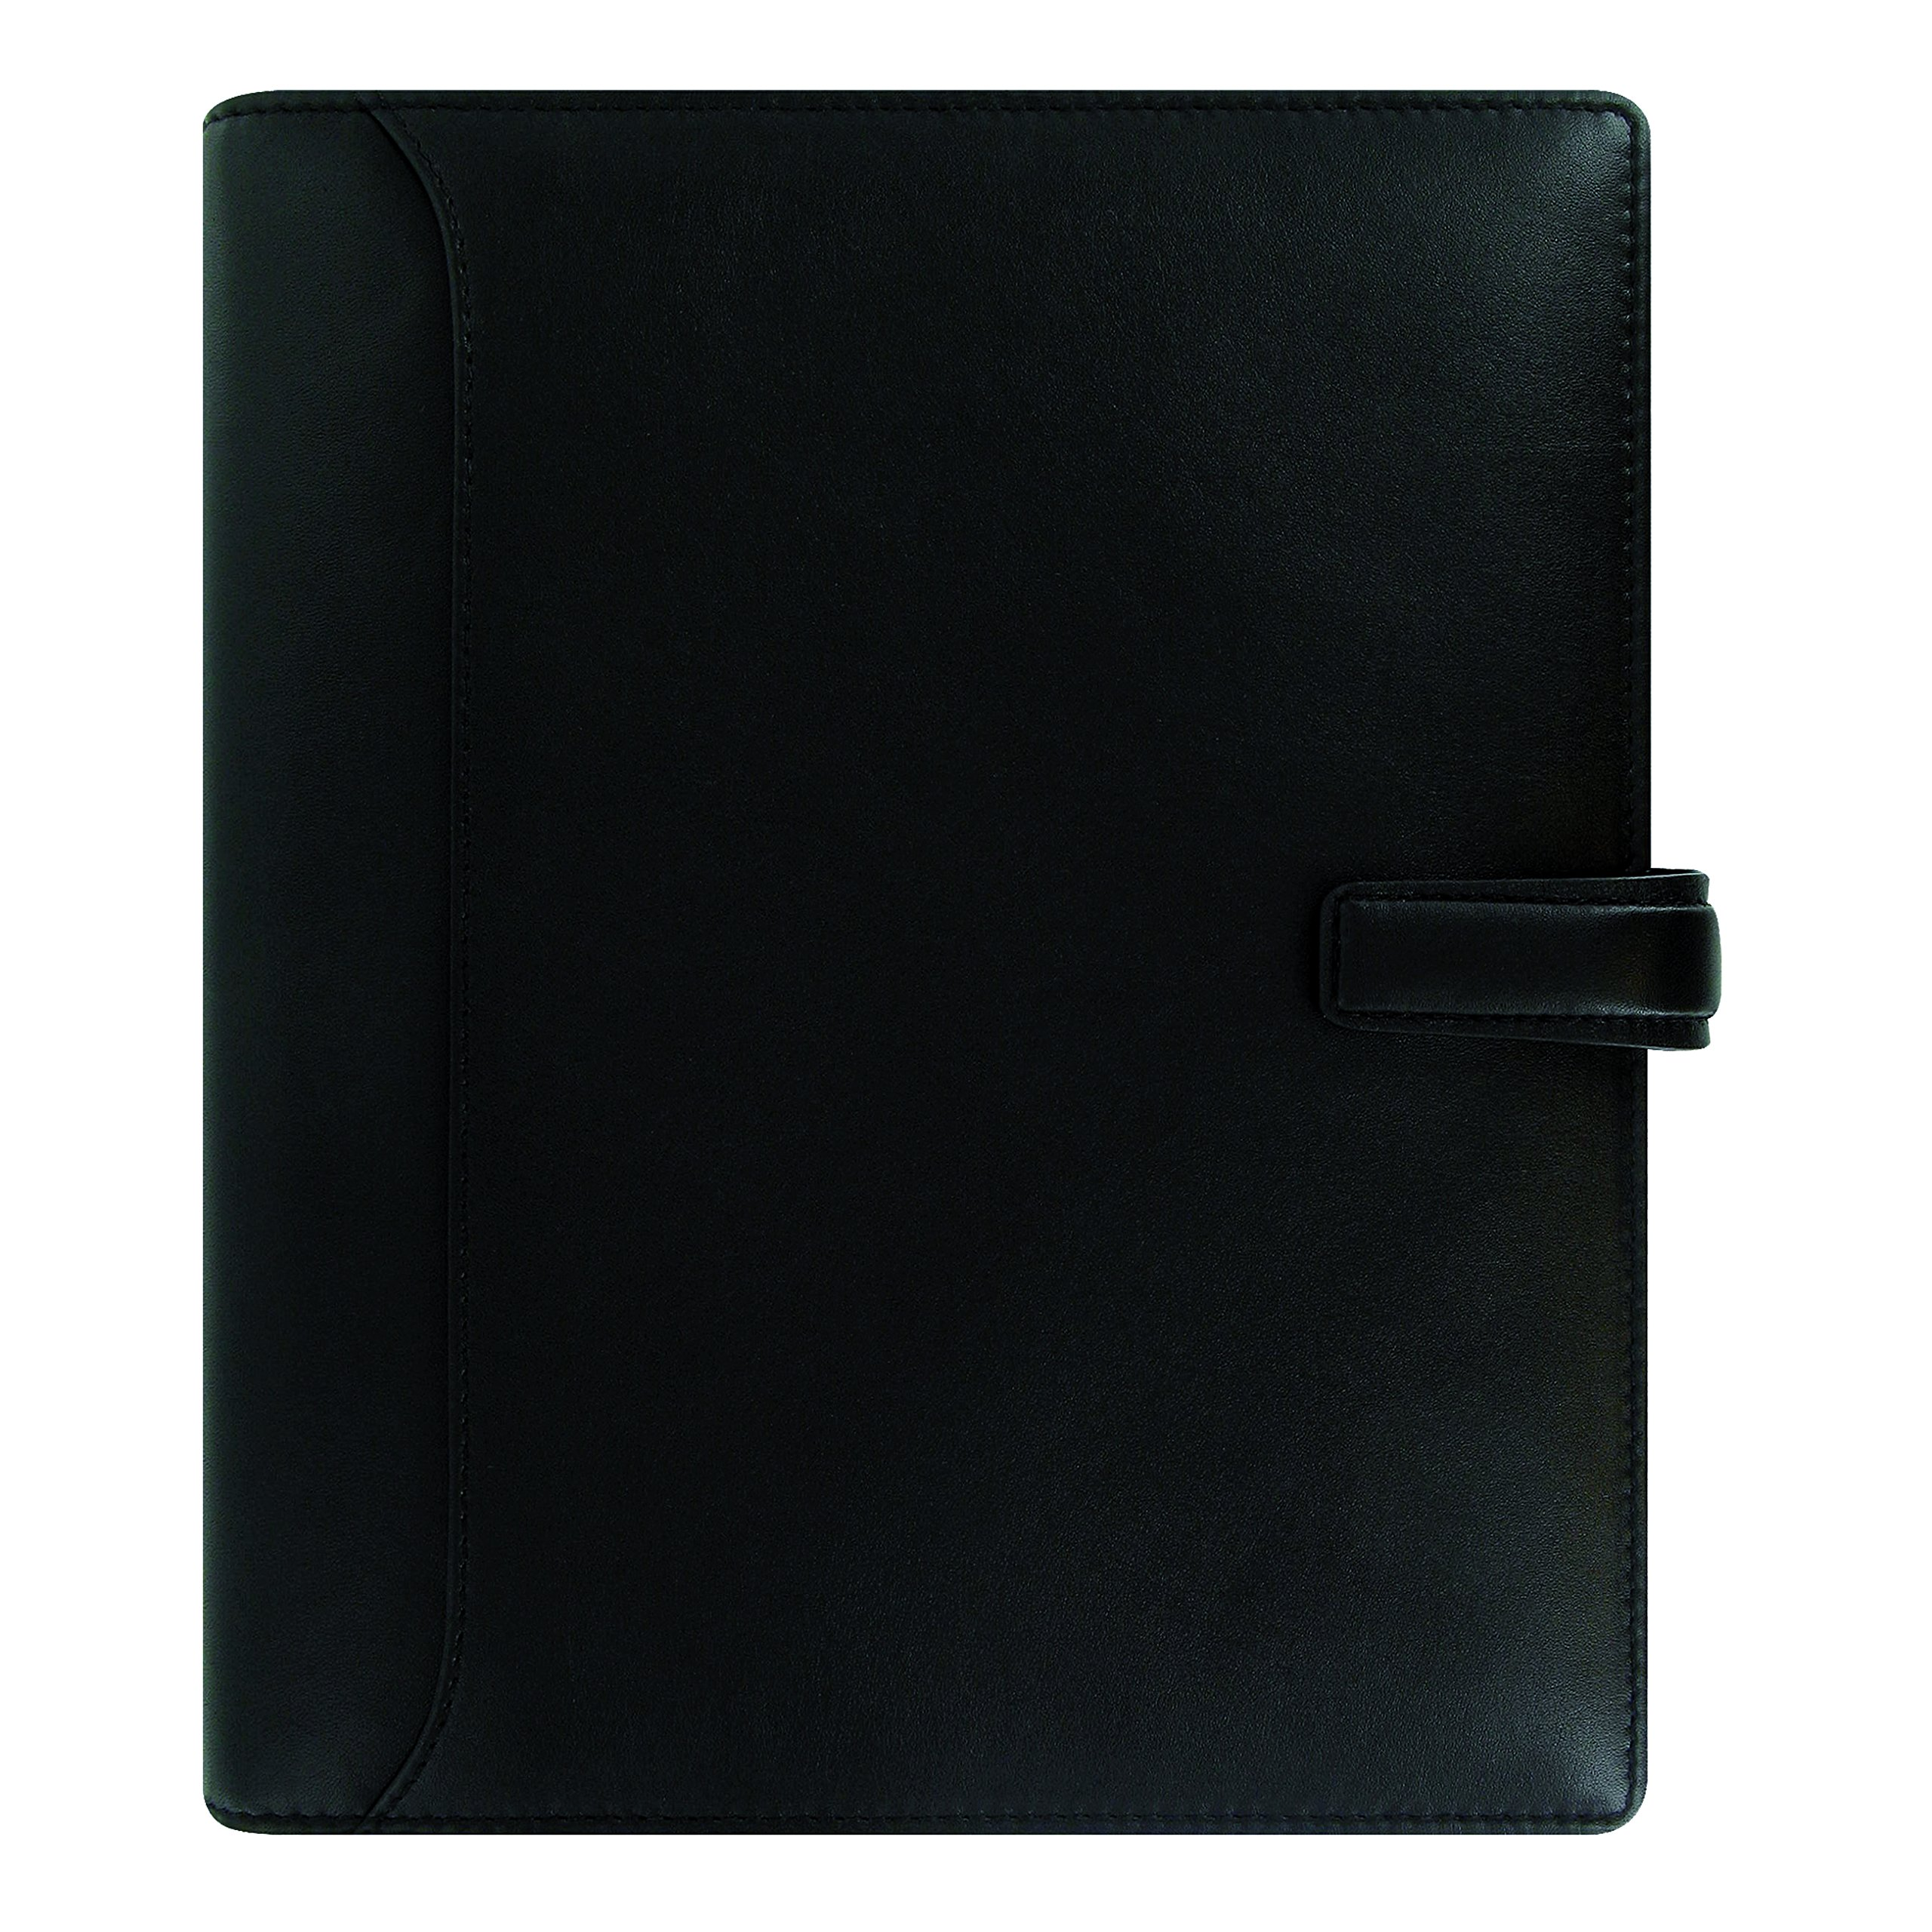 Filofax 2018 A5 Nappa Organizer, Leather, Black, Paper Size 8.25 x 5.75 inches (C025137-18)